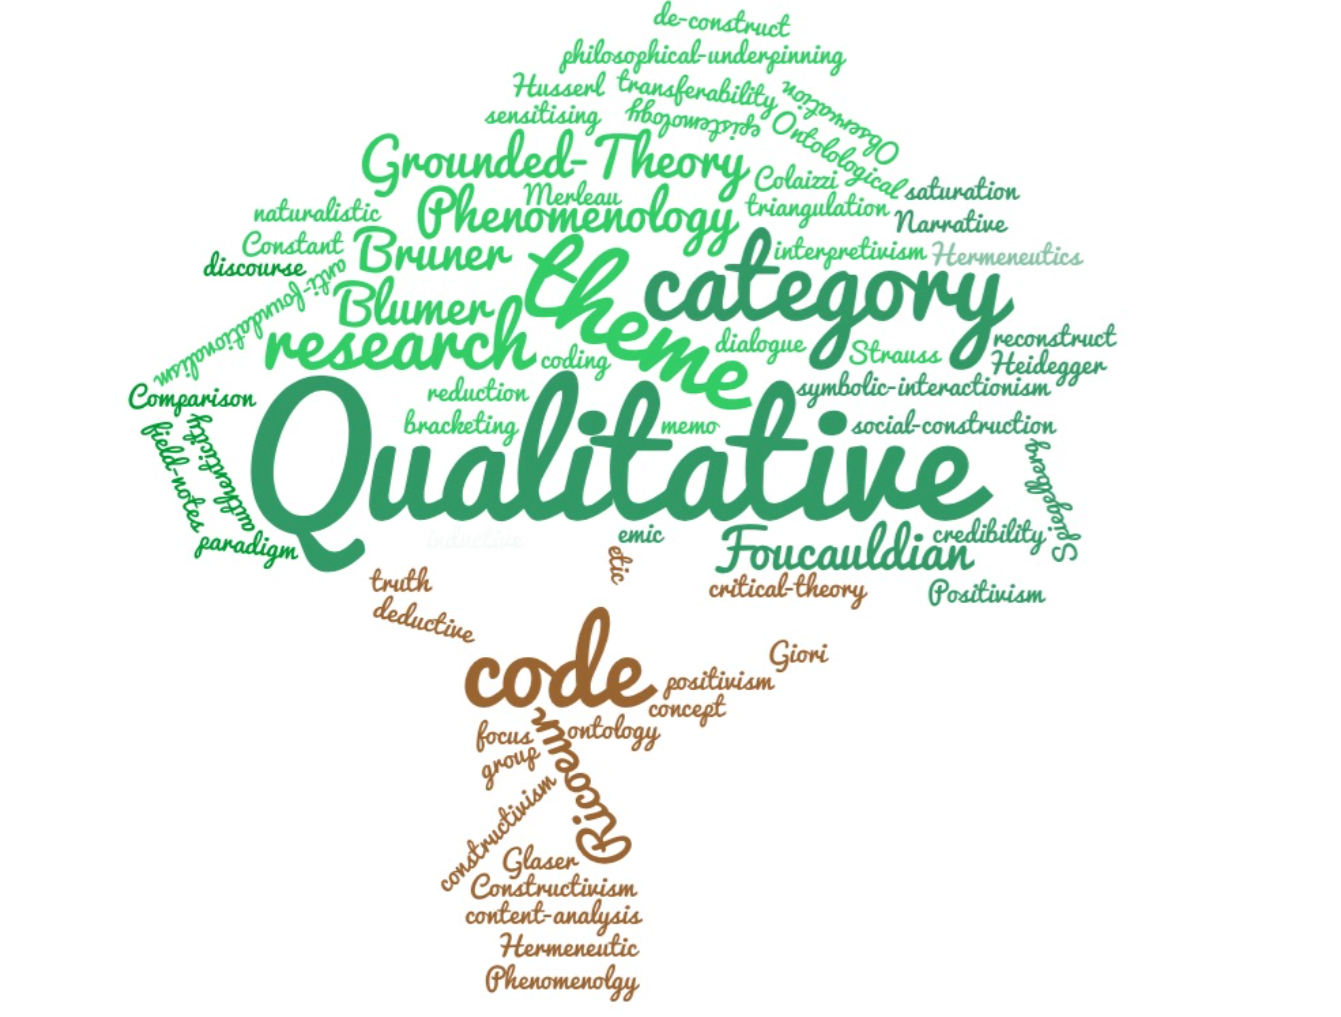 Can qualitative research improve patient care? - Evidently ...